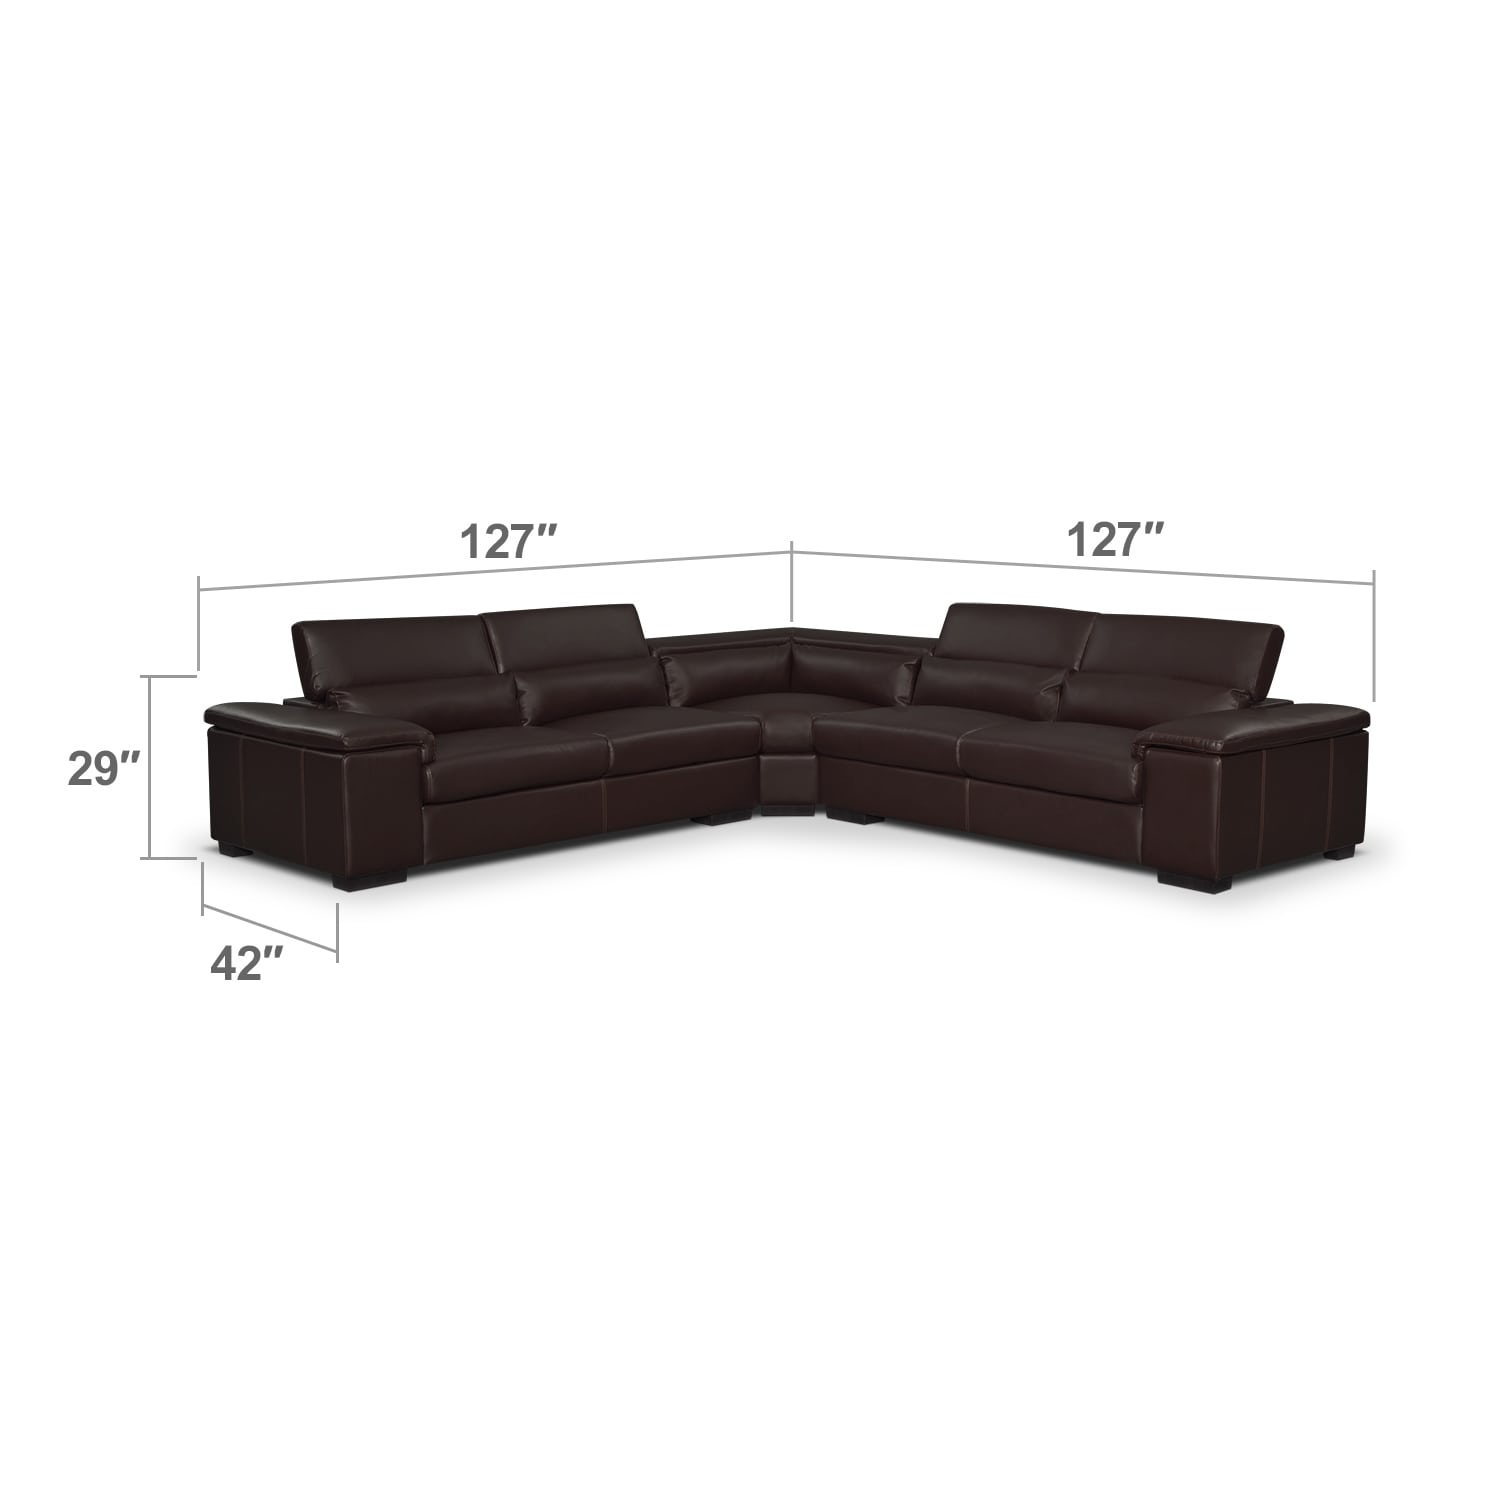 Living Room Furniture - Ventana 3-Piece Sectional - Godiva